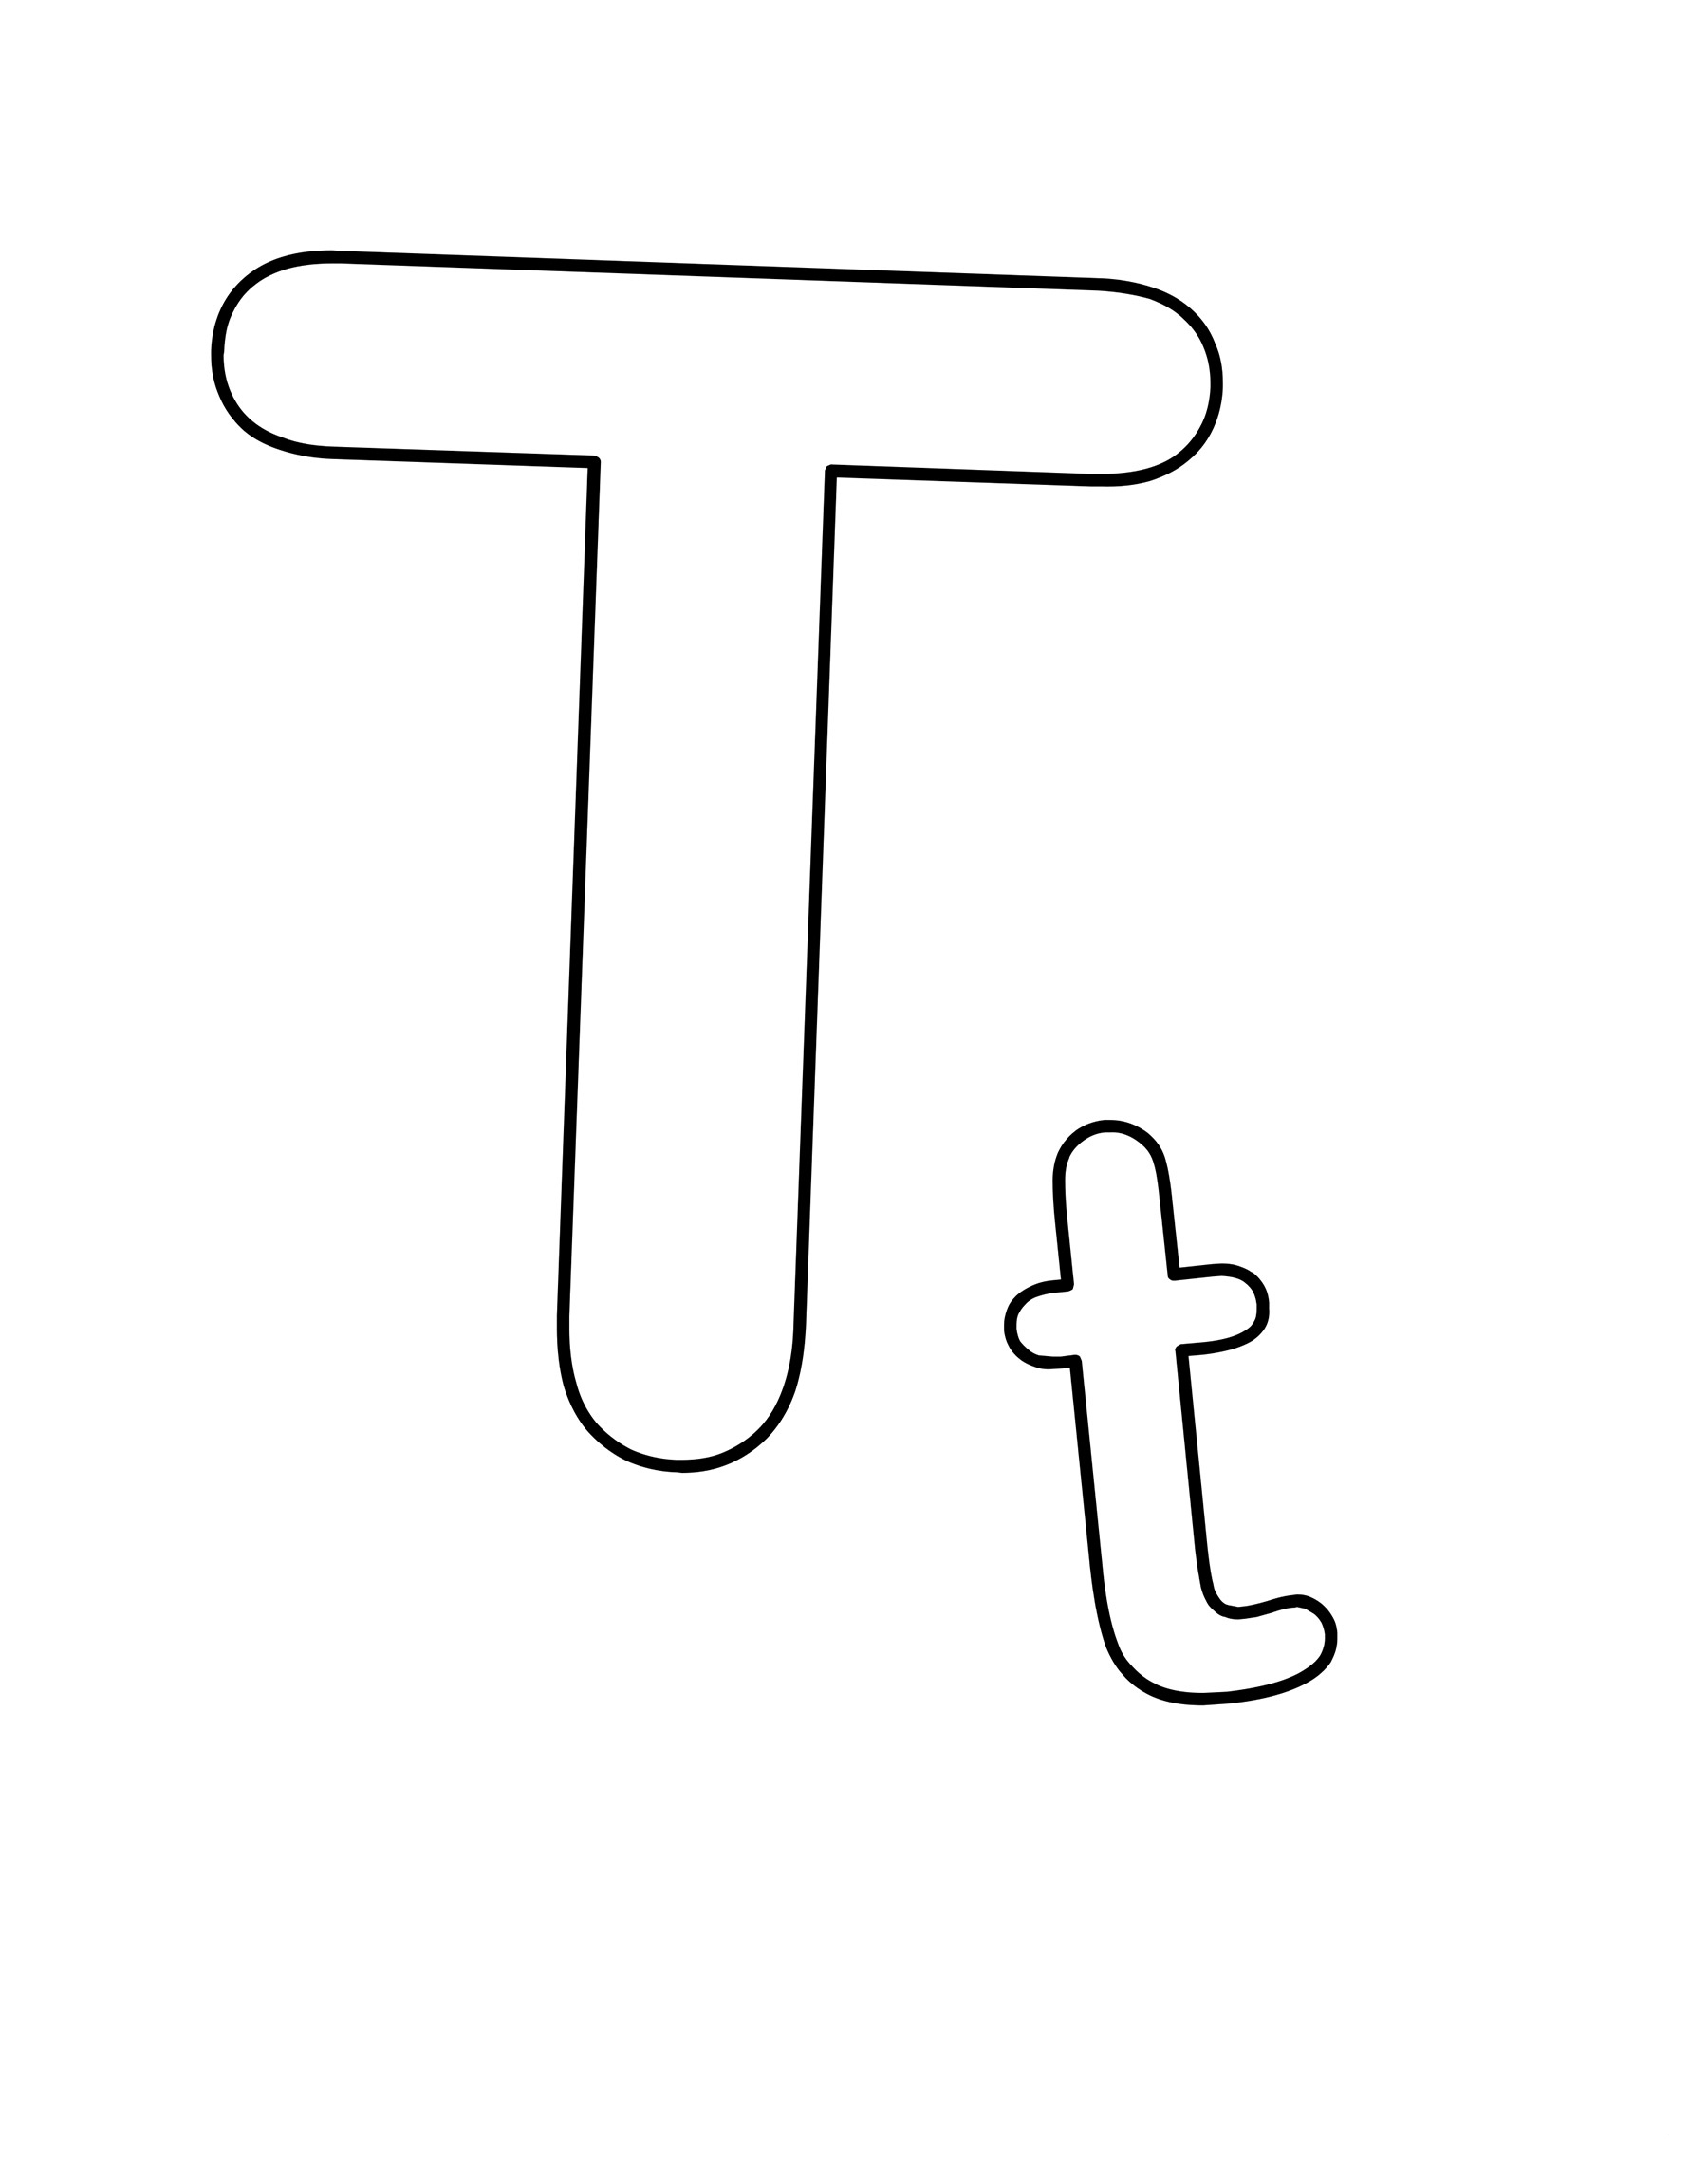 t coloring page animal alphabet letter t coloring turtle coloring coloring t page